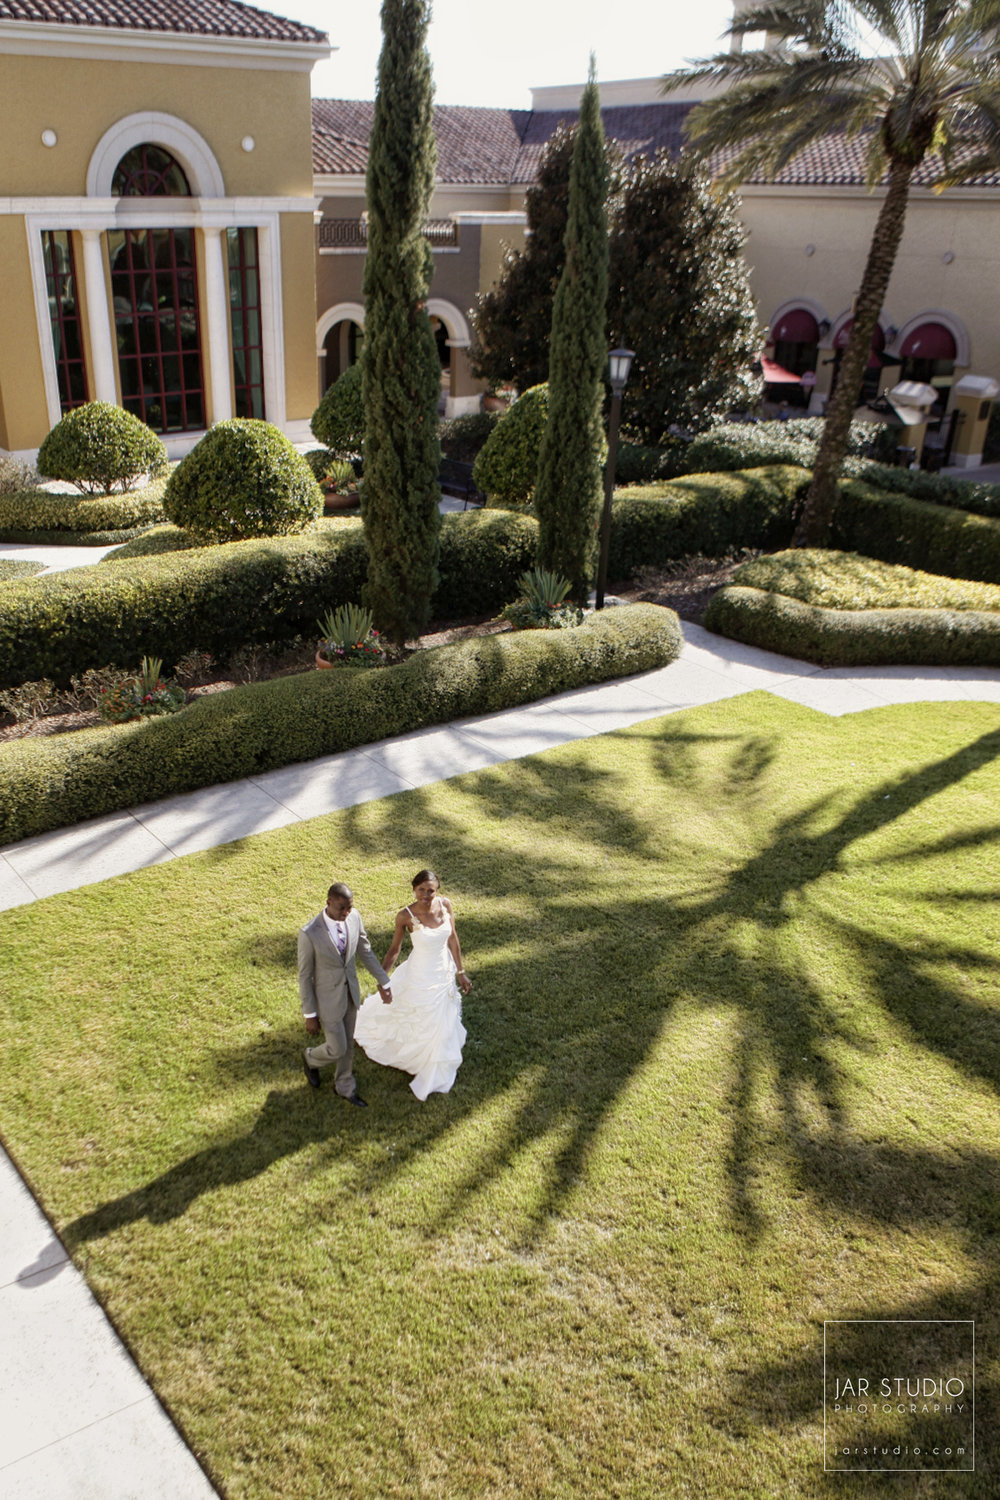 39-Wedding-Hilton-Grand-Vacations -Tuscany-Village-Photographer-jarstudio.JPG